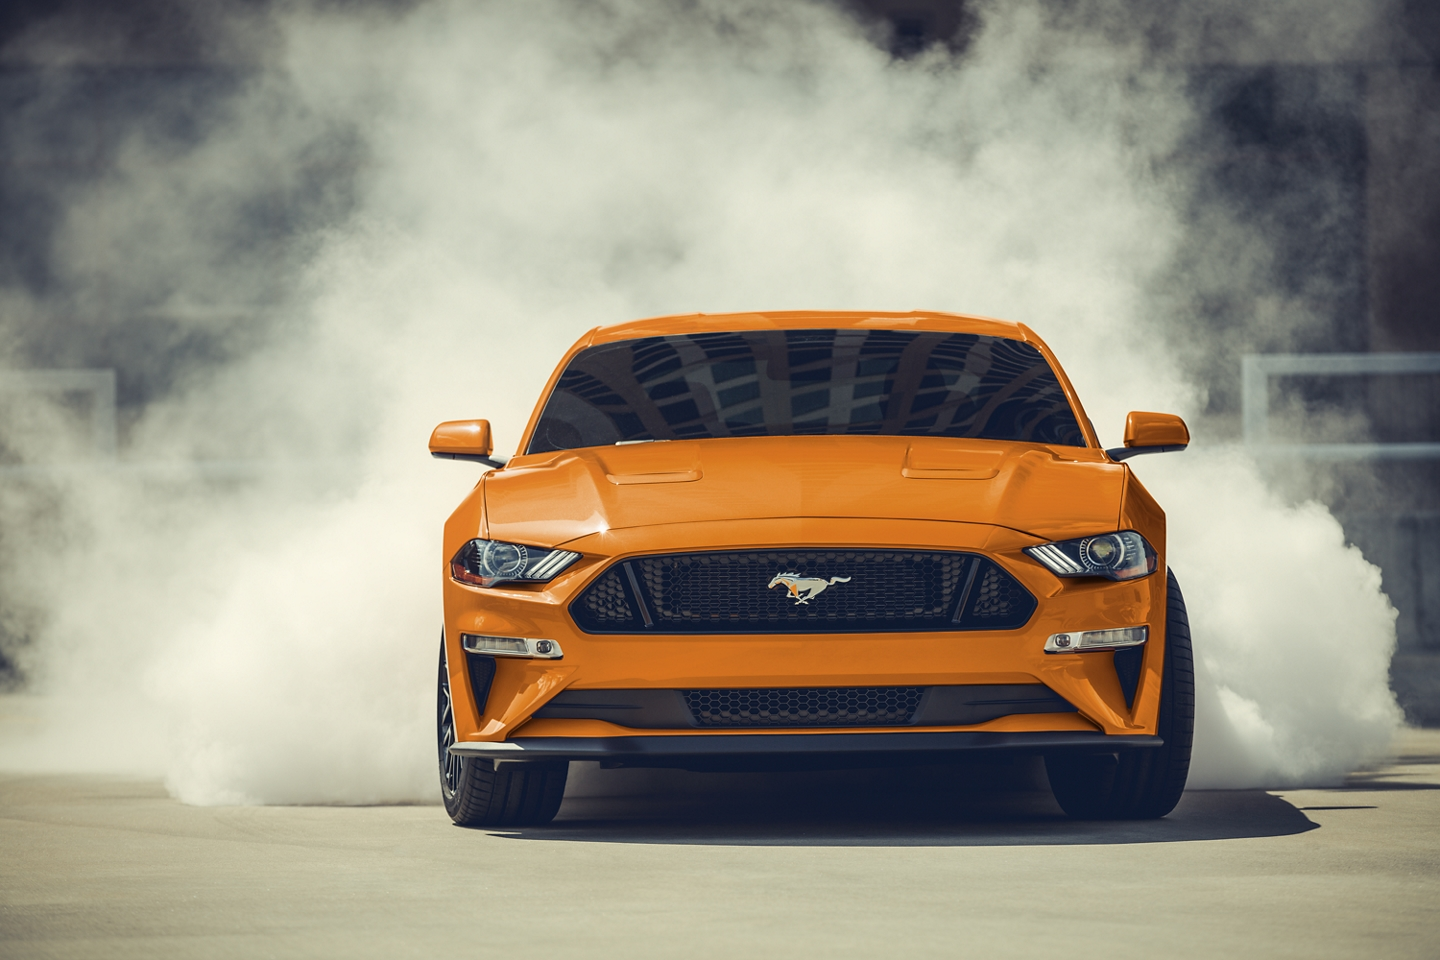 2020 Ford Mustang Lease near Dallas, TX